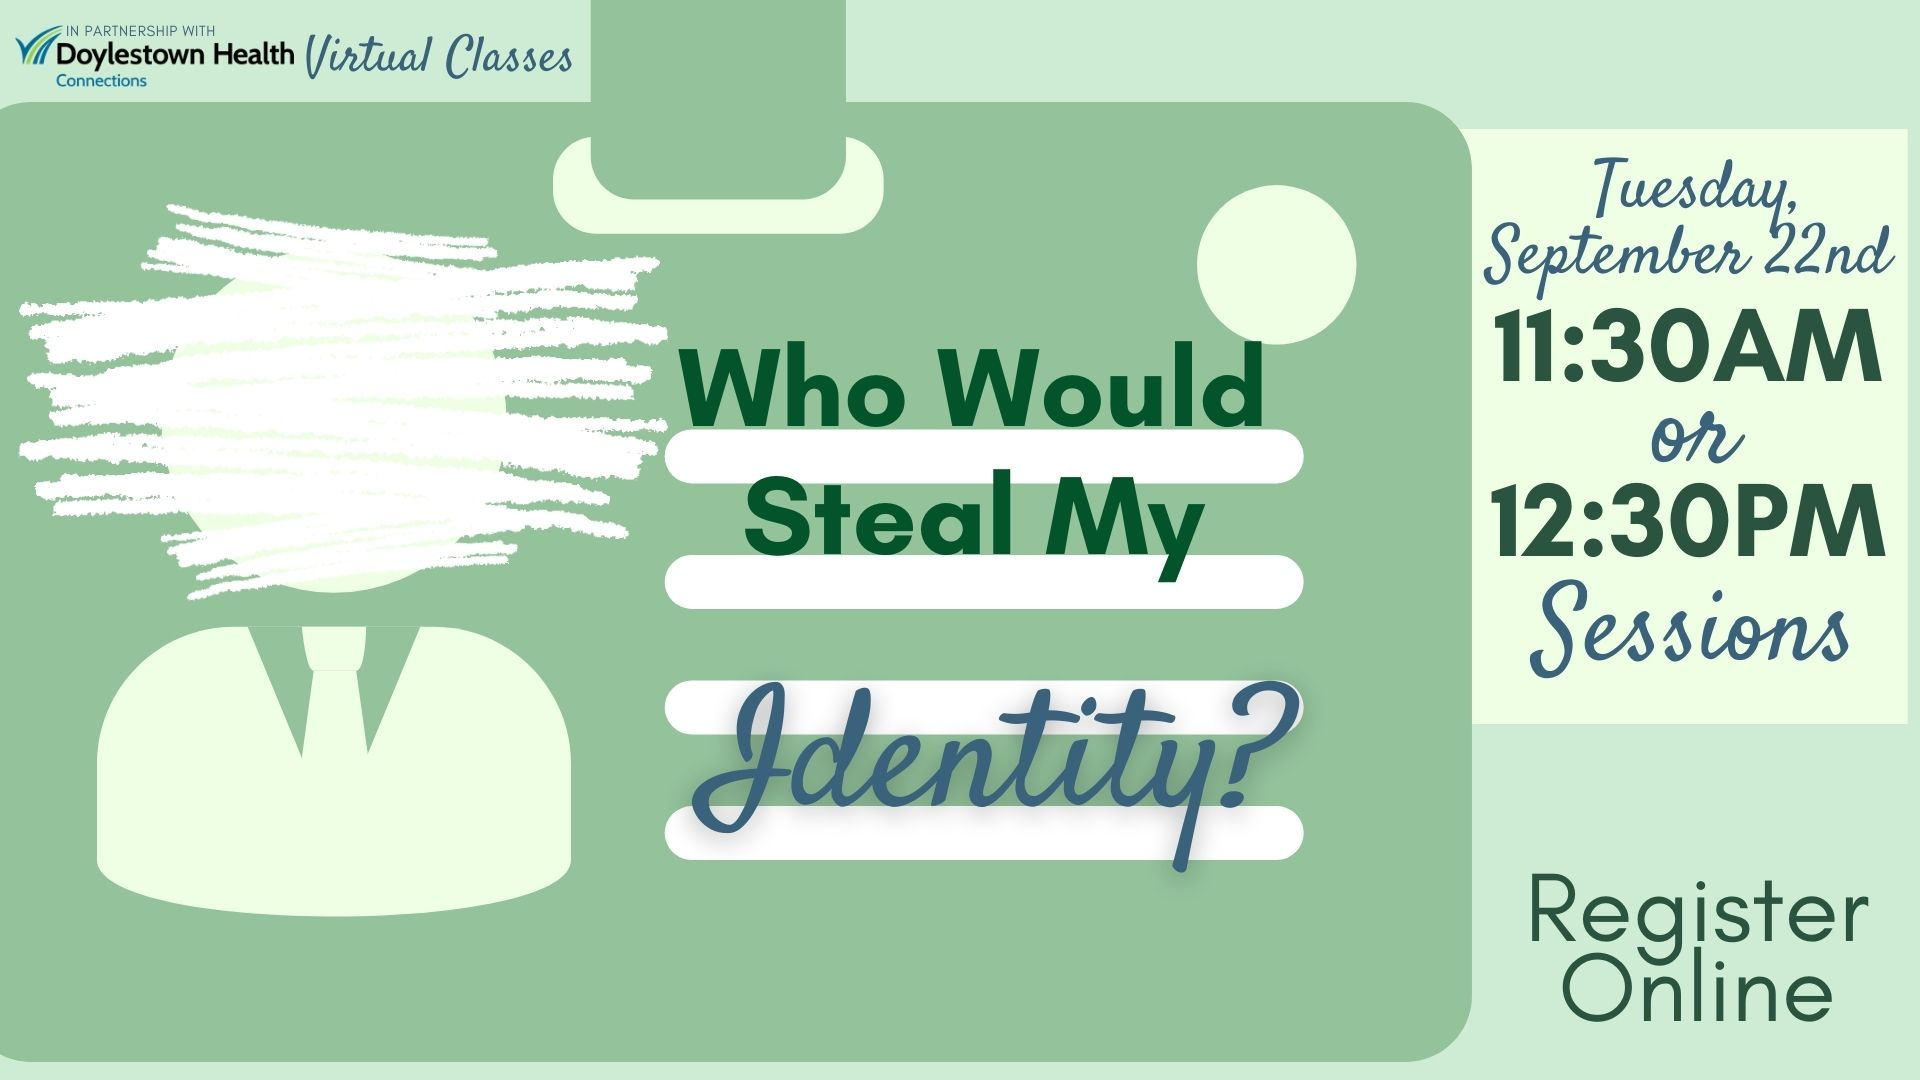 Who Would Steal My Identity?